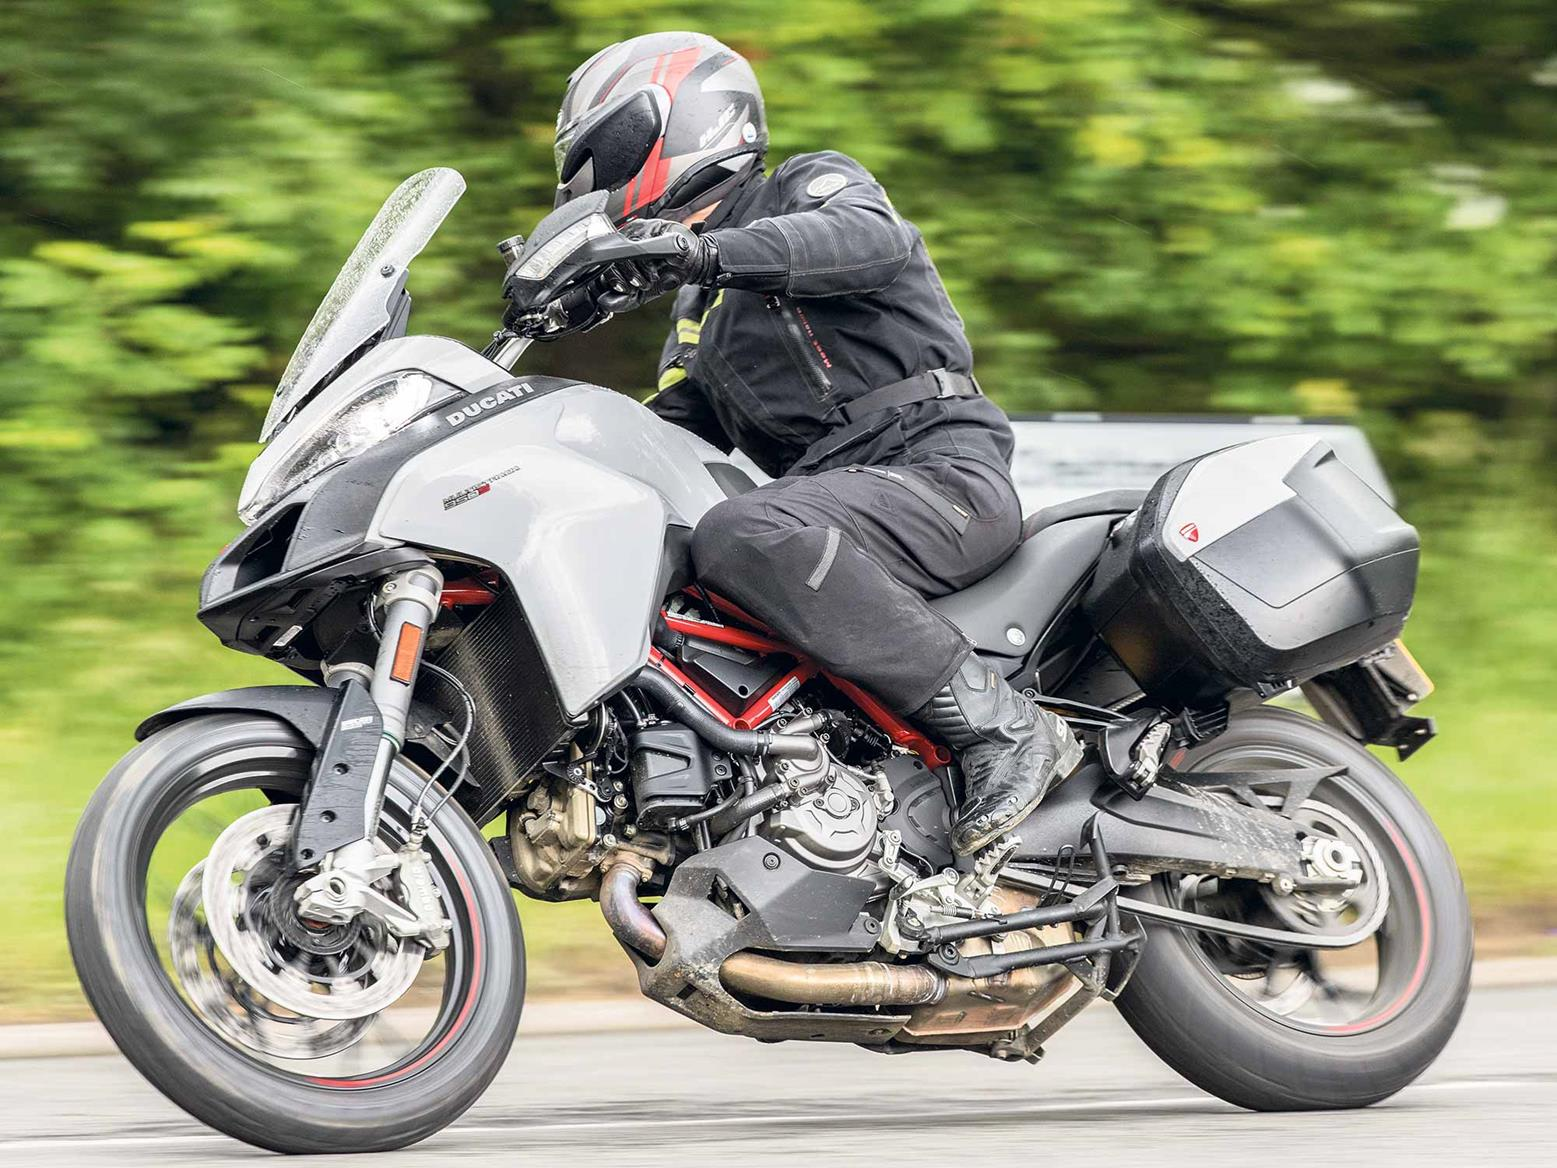 The Ducati Multistrada 950S is included